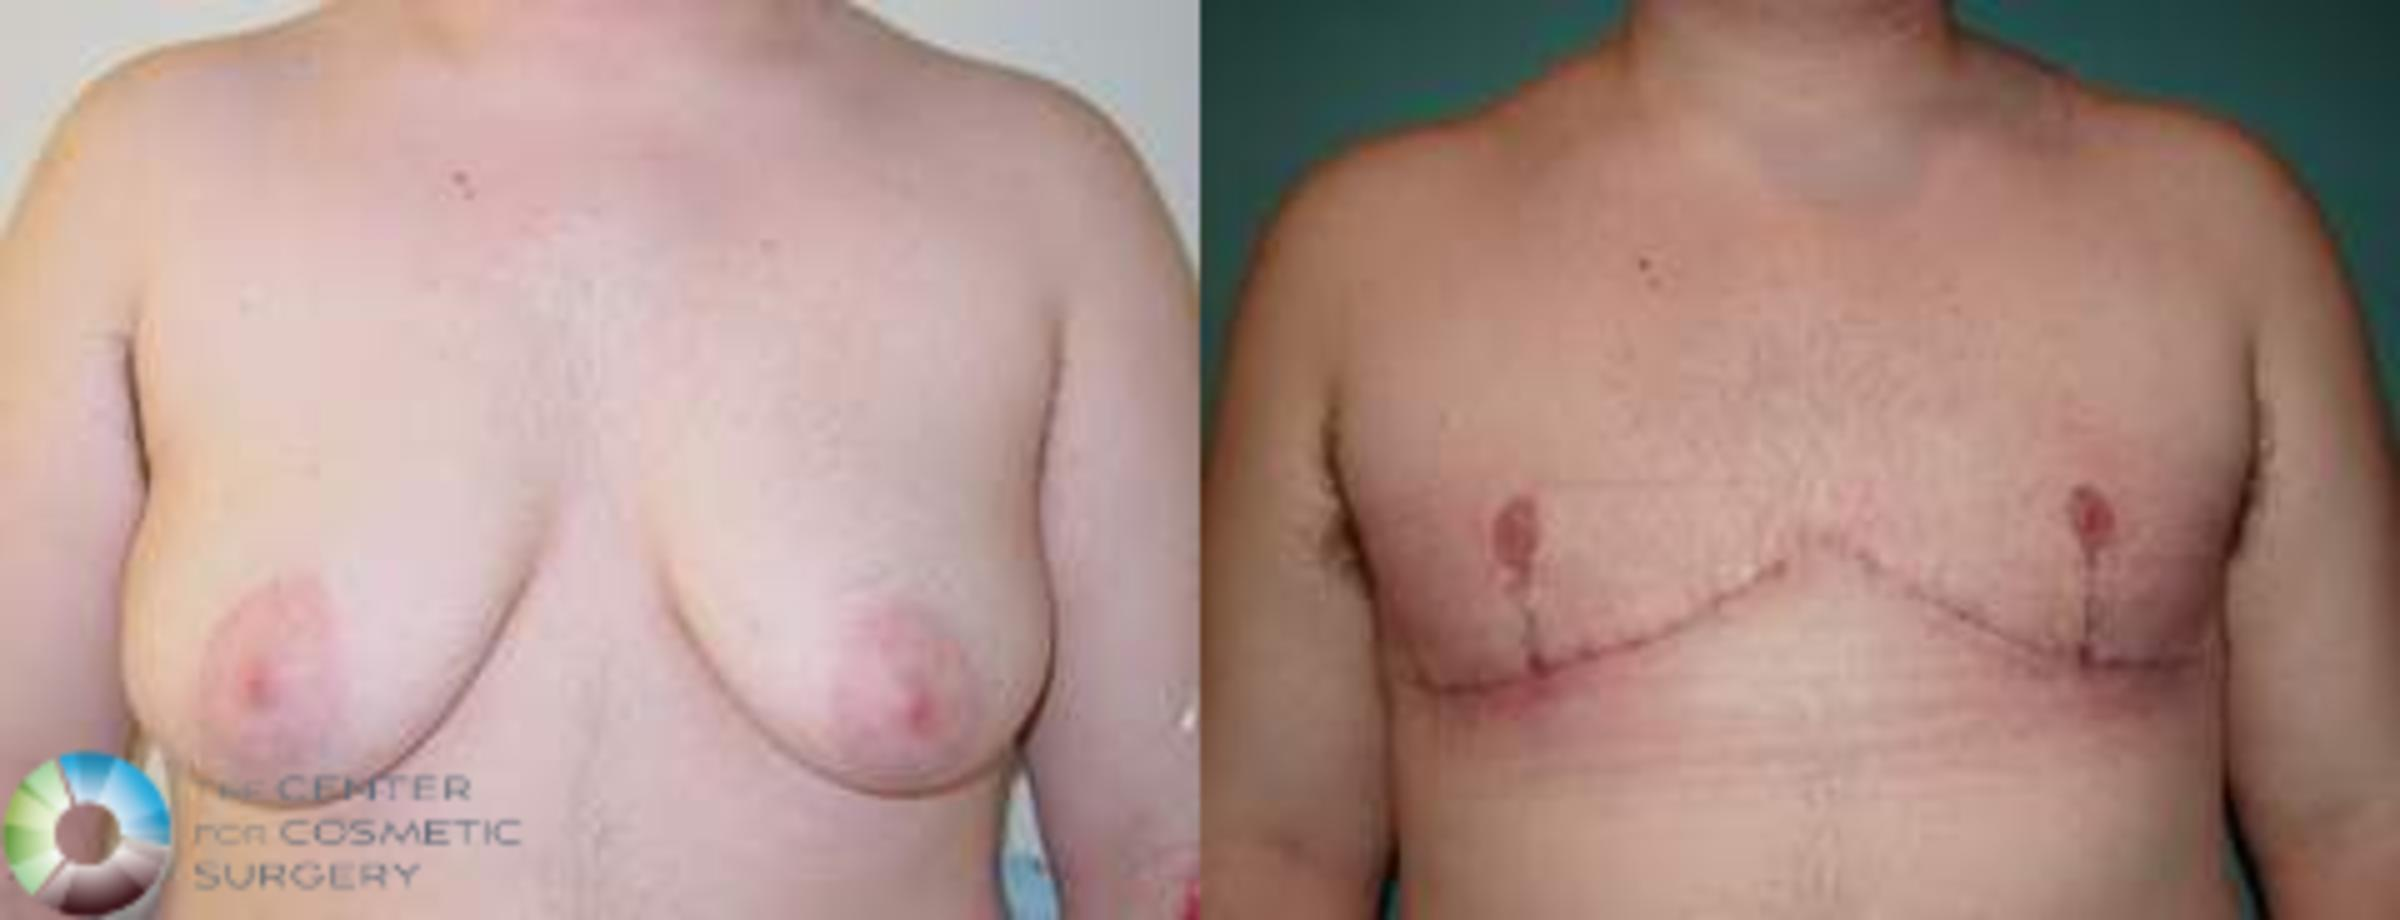 FTM Top Surgery/Chest Masculinization Case 560 Before & After View #1 | Golden, CO | The Center for Cosmetic Surgery